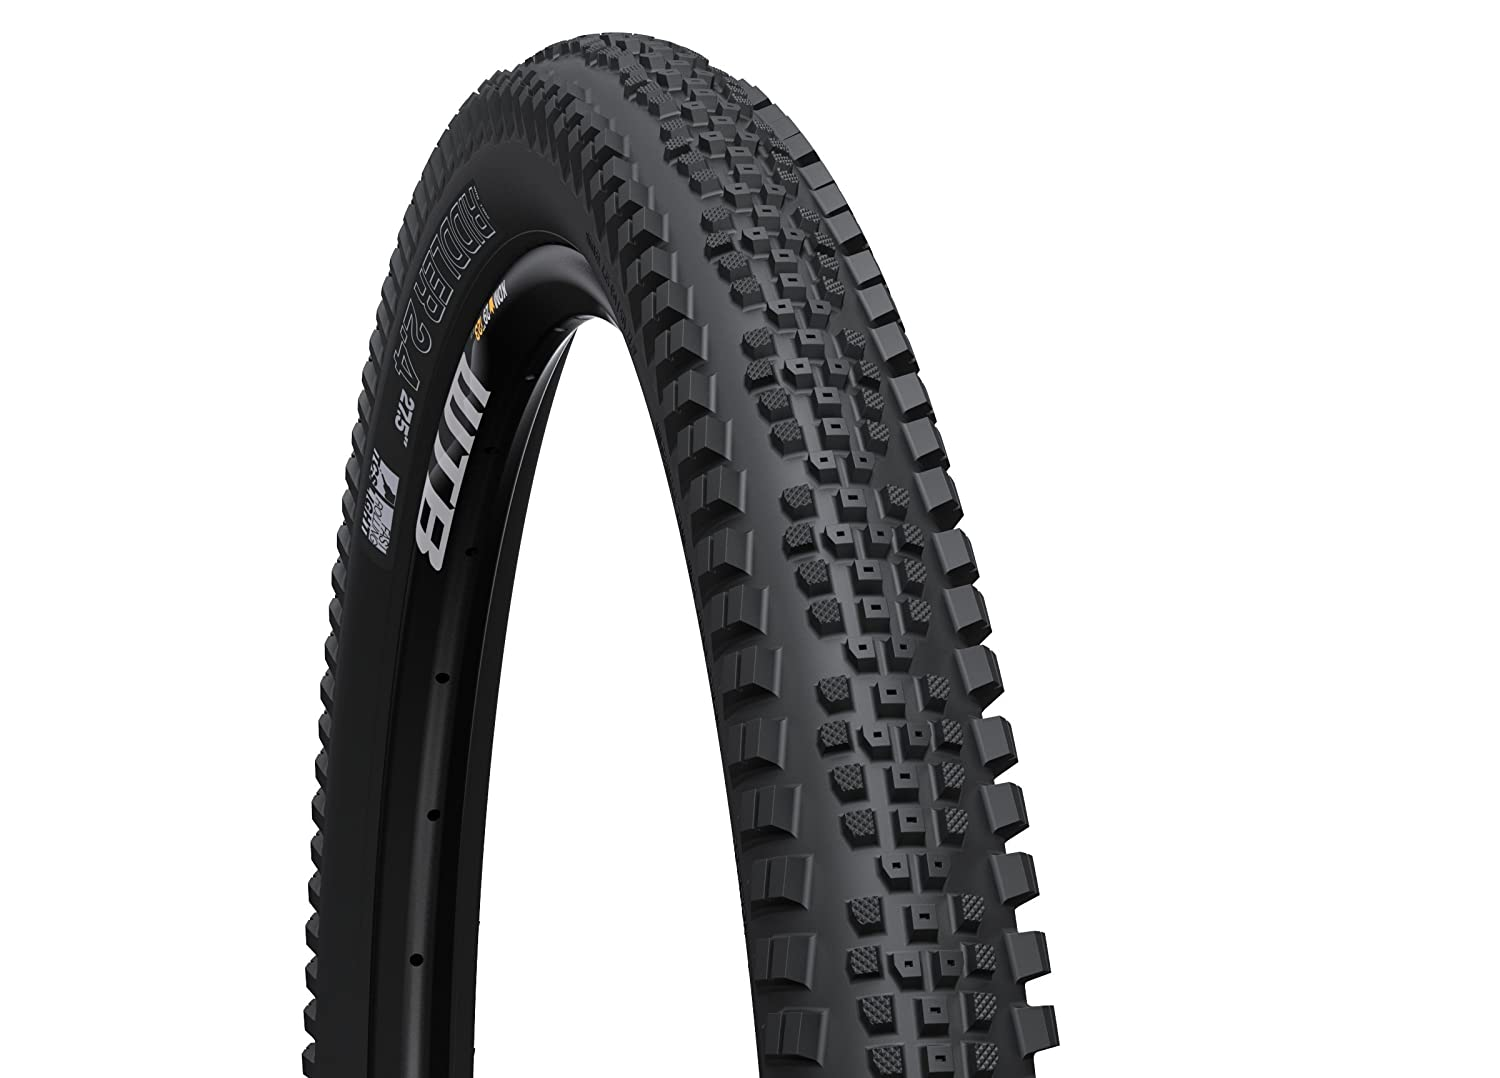 WTB Riddler TCS Light Fast Rolling Tubeless Ready Bicycle Tire